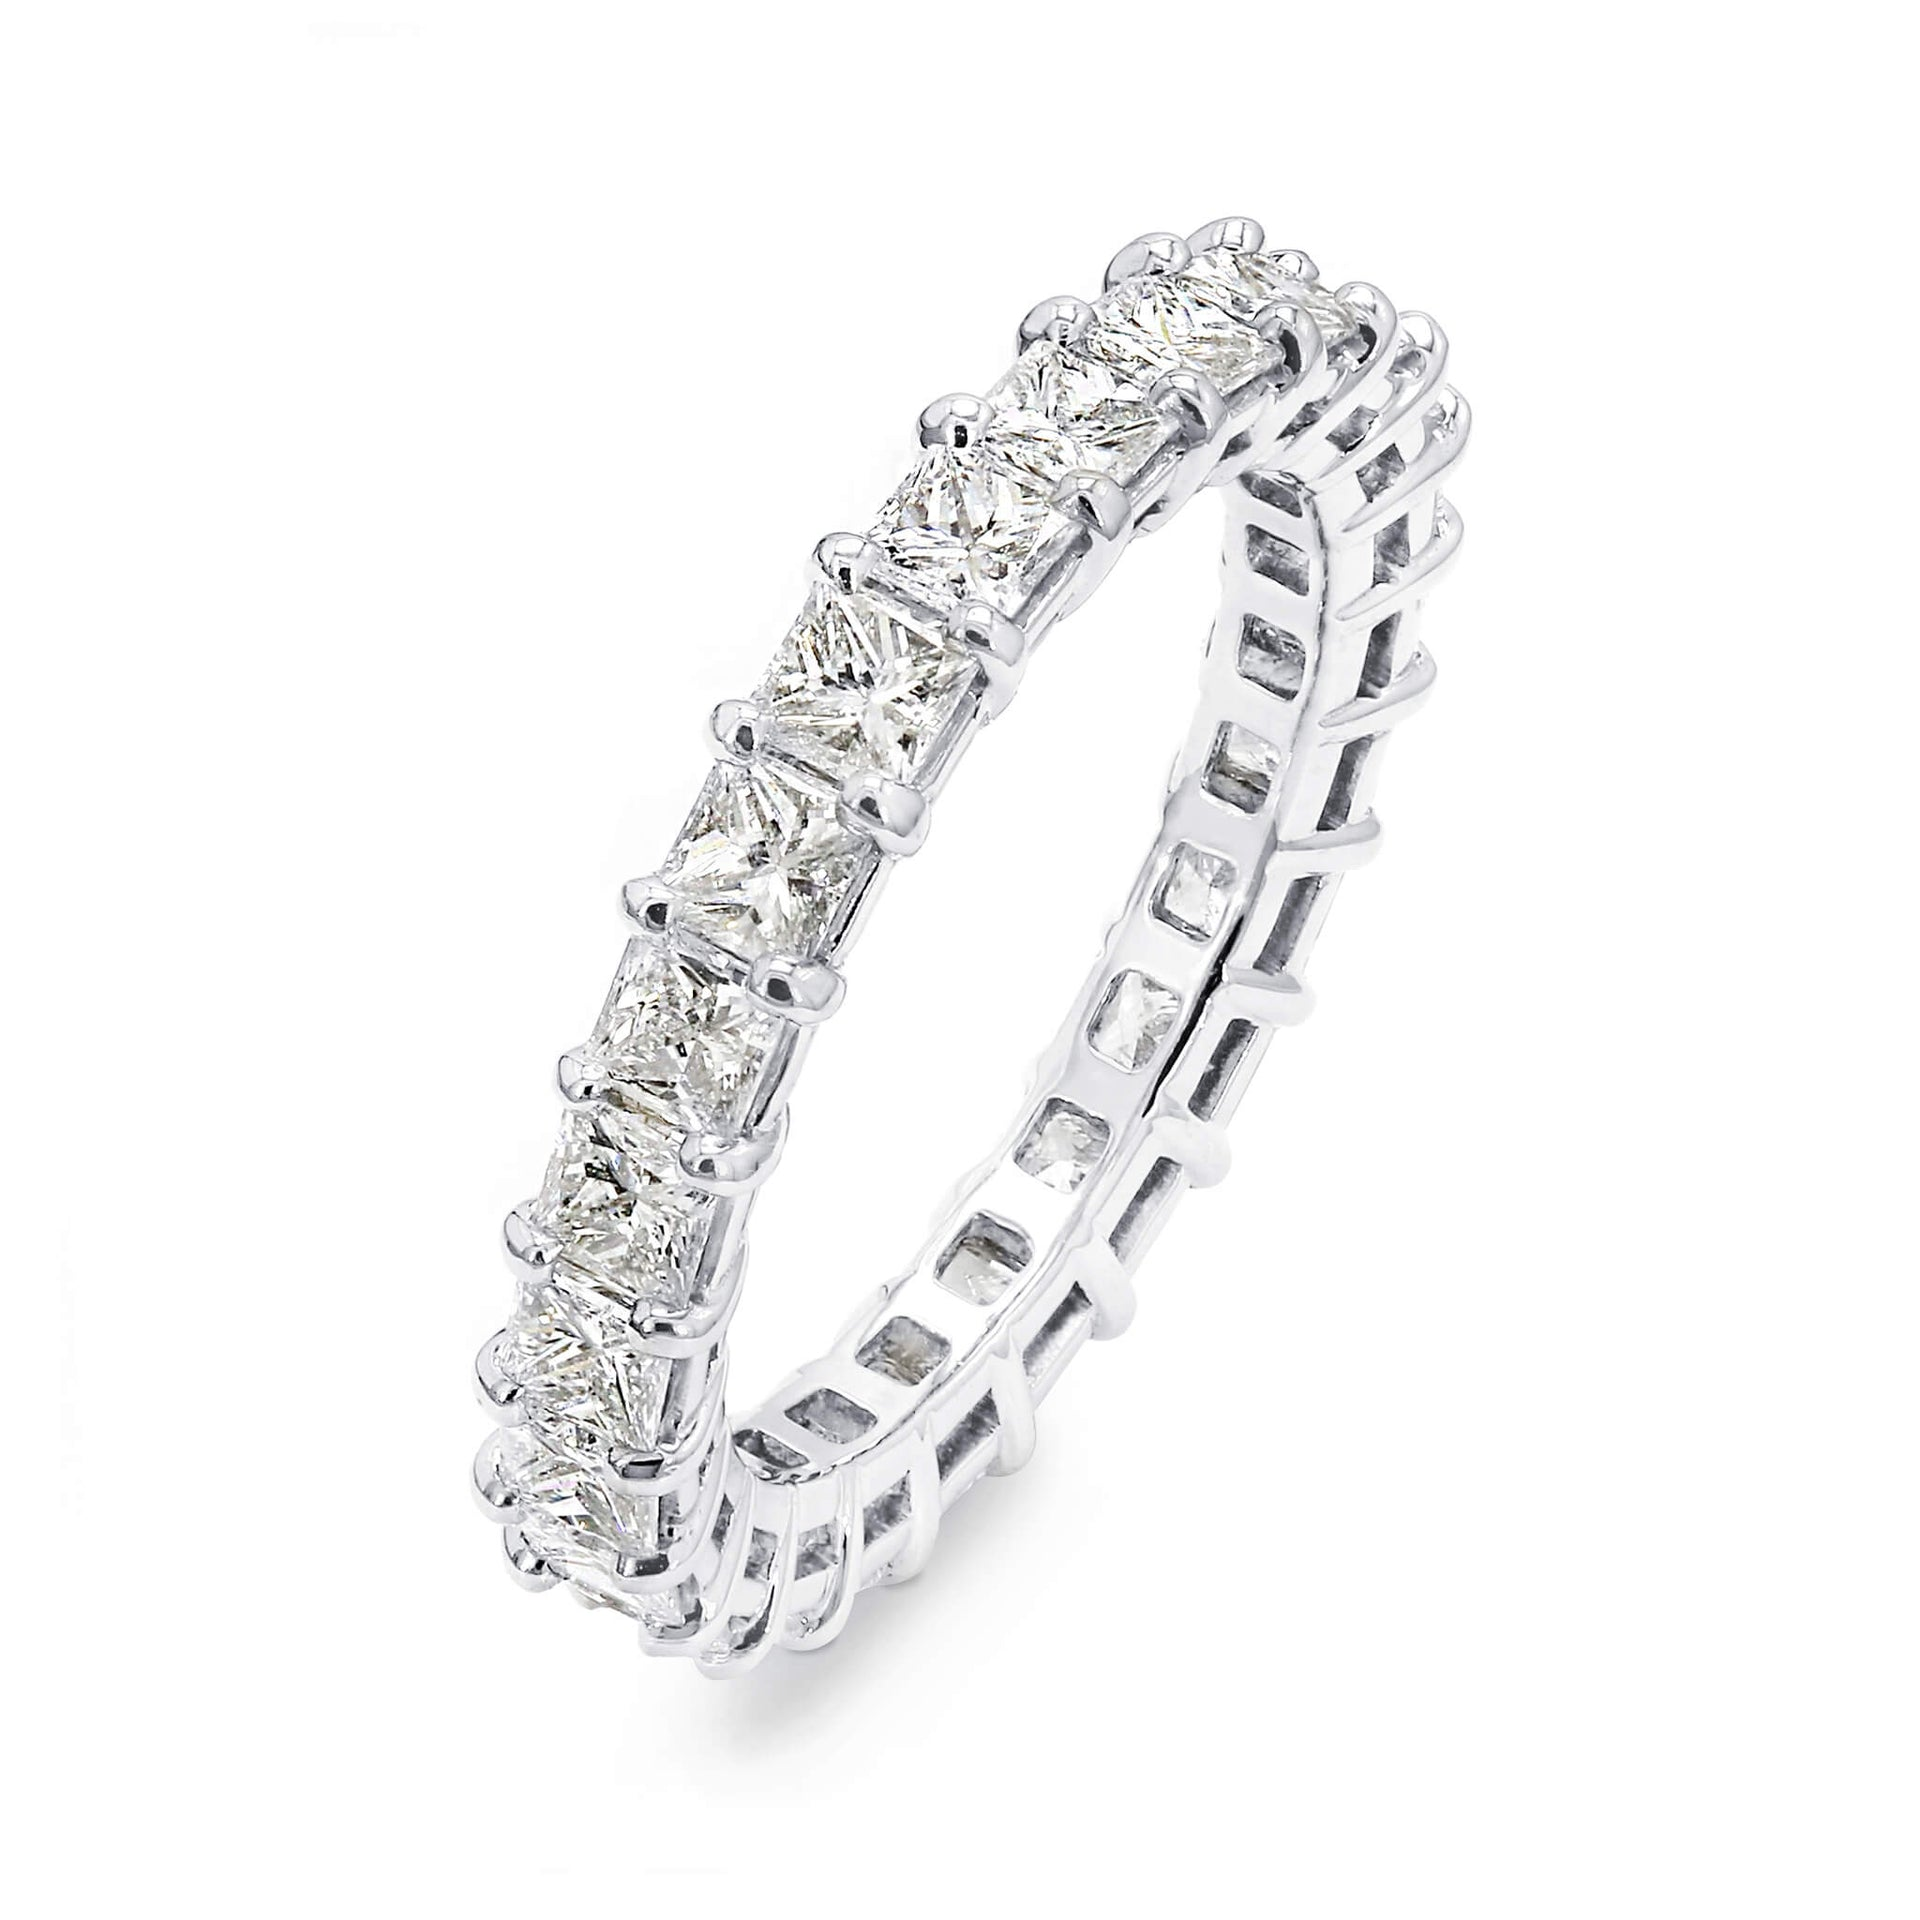 3.00 Carat Princess Cut Eternity Diamond Ring in Platinum 3D View